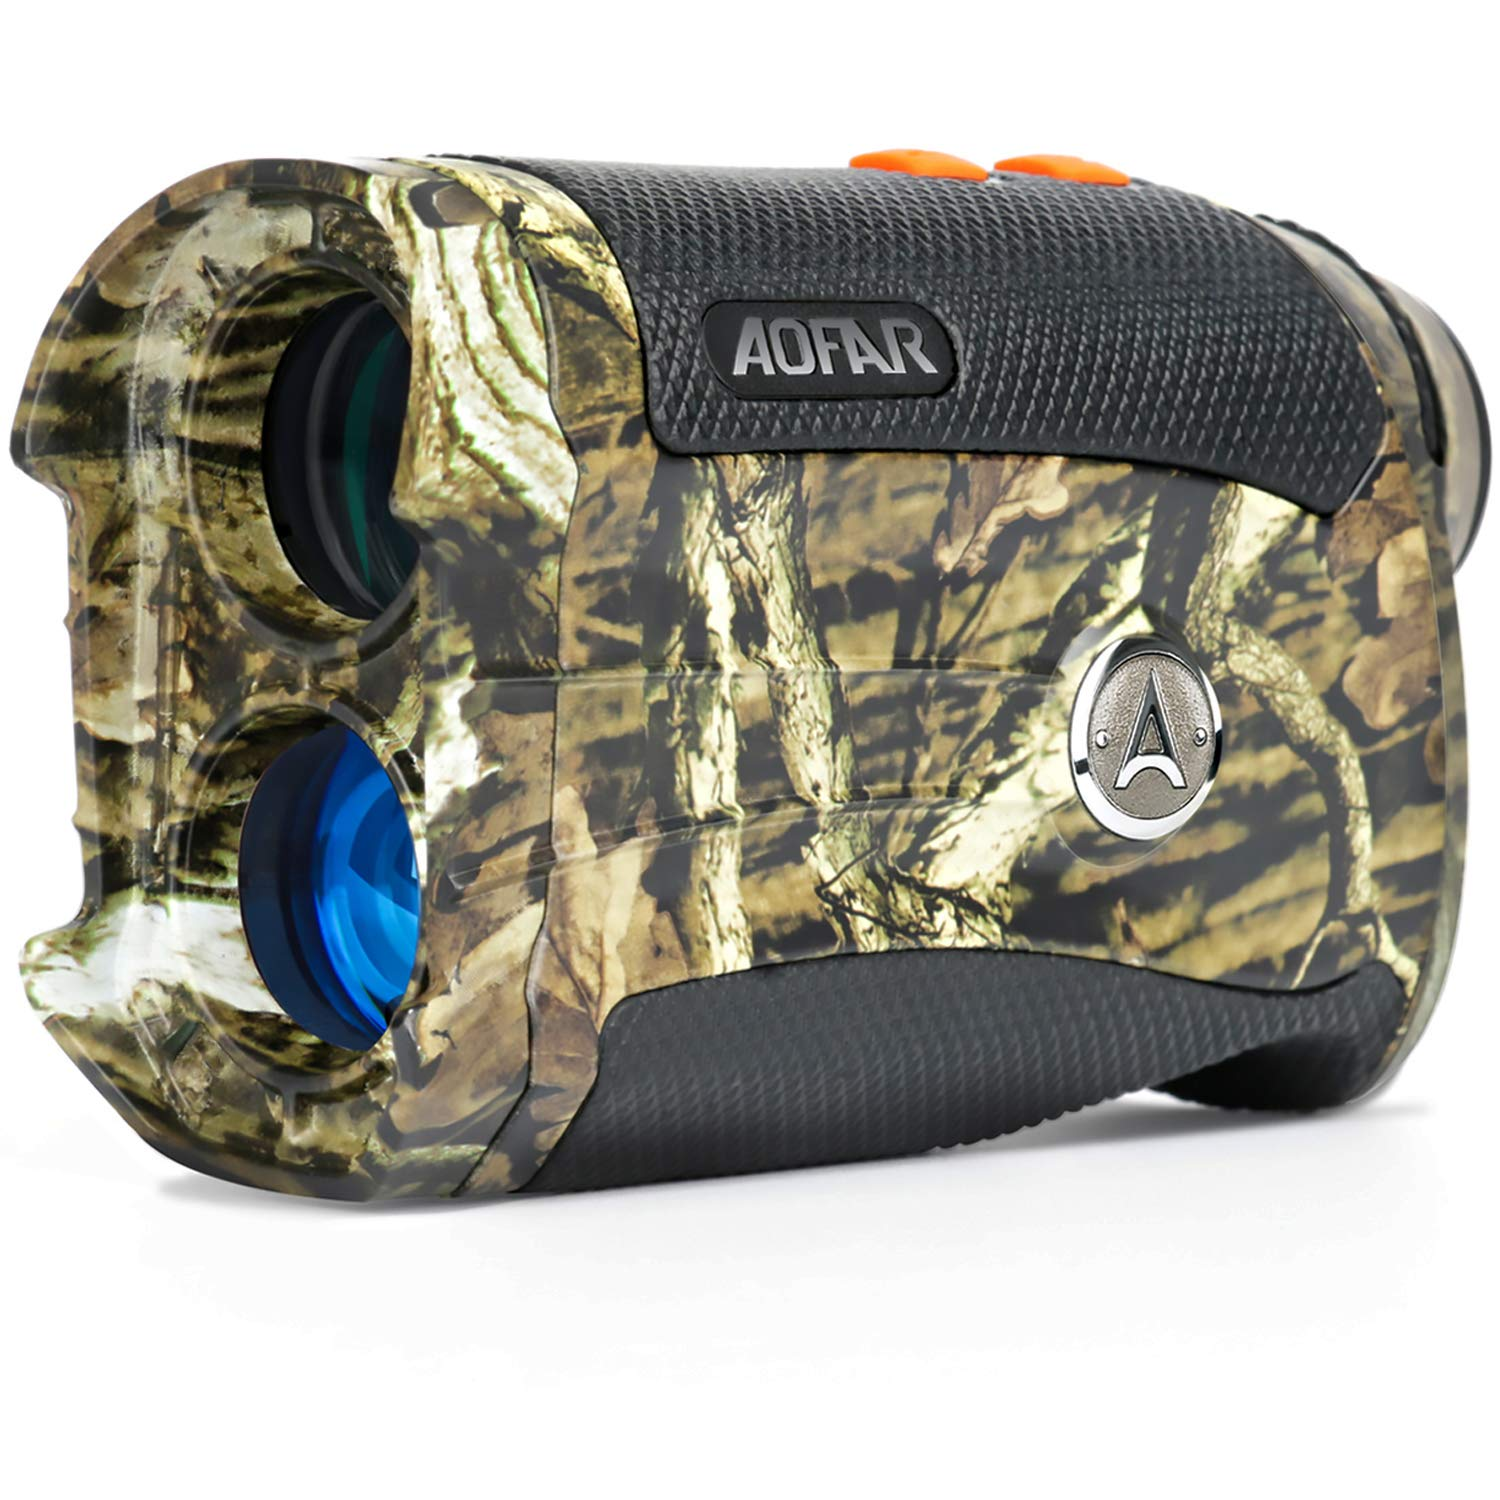 AOFAR Range Finder for Hunting Archery H2 1000 Yards Shooting Wild Waterproof Coma Rangefinder with Angle and Horizontal Distance, 6X 25mm, Range and Bow Mode, Free Battery Gift Package